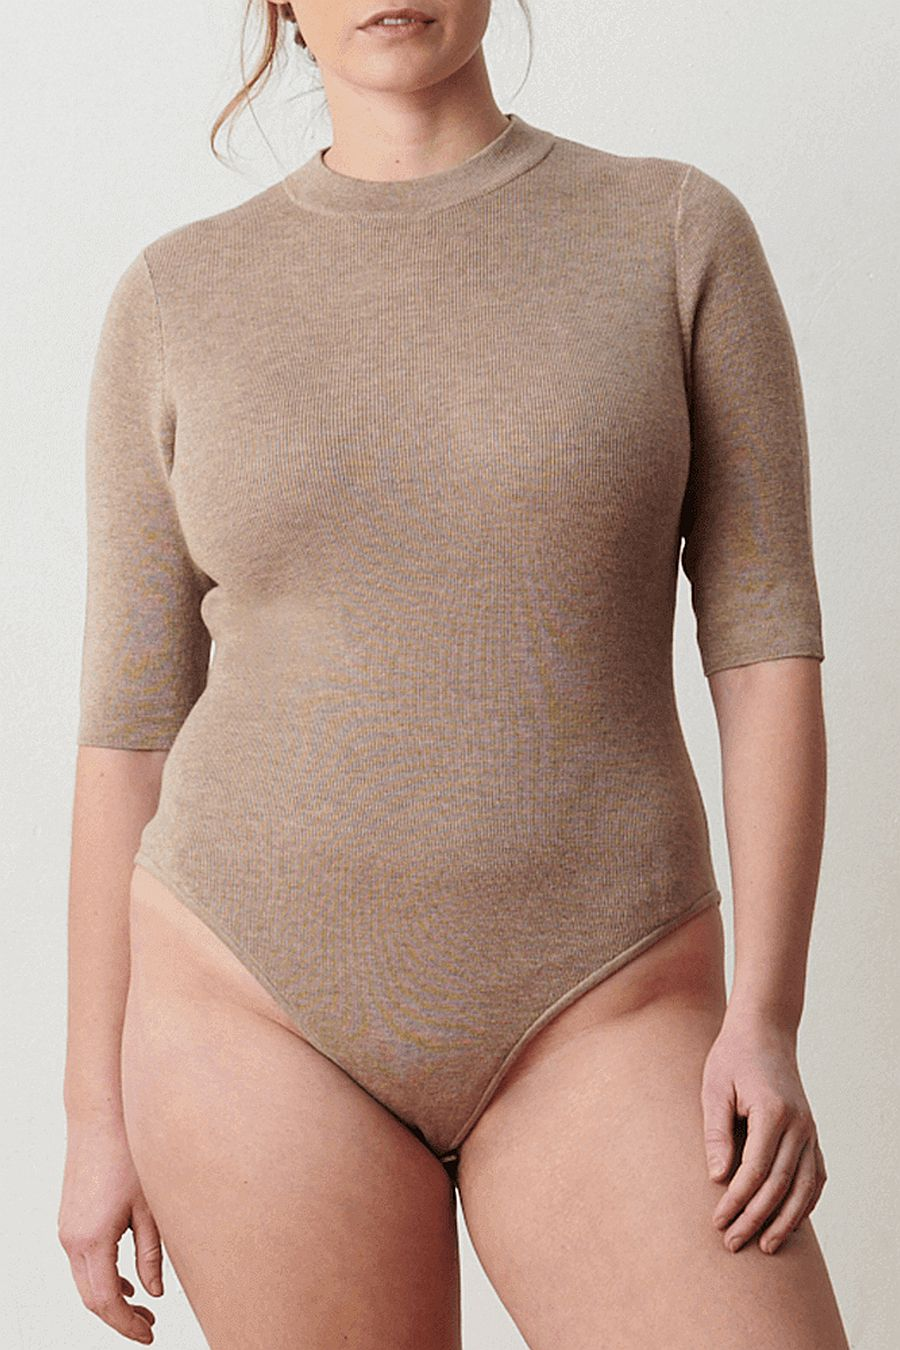 Aday Like A Glove Bodysuit - Taupe